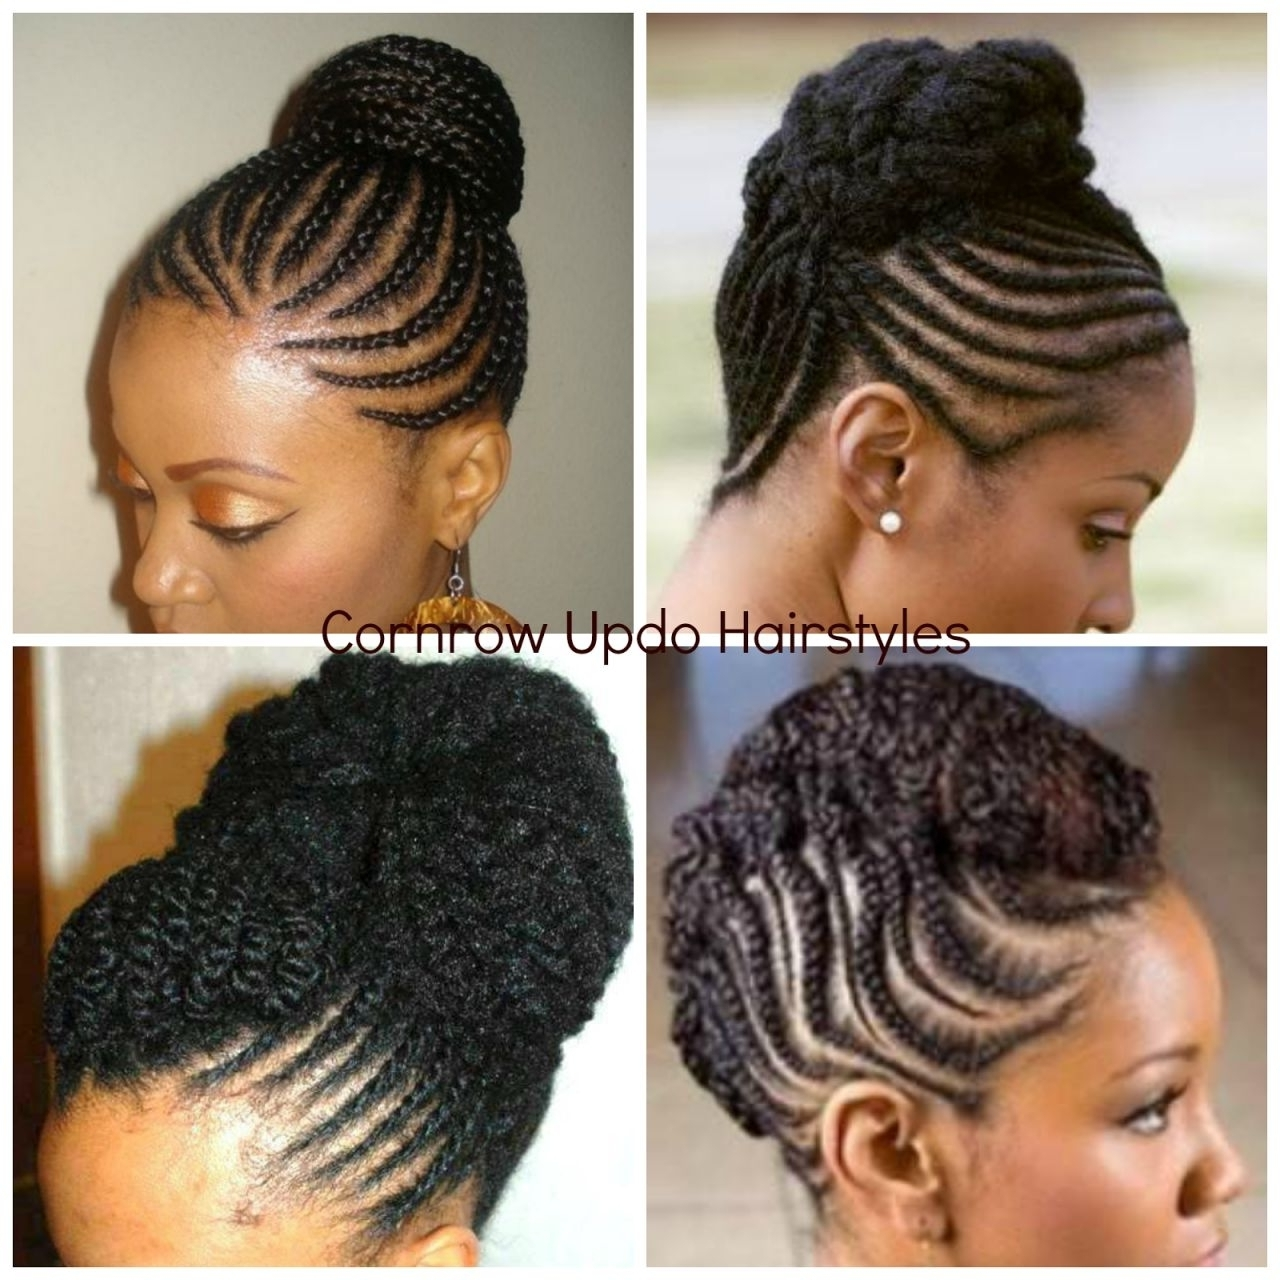 Braiding Styles Natural Hair Cornrow Hairstyles Updo Black Hair Regarding Updo Cornrow Hairstyles (View 3 of 15)